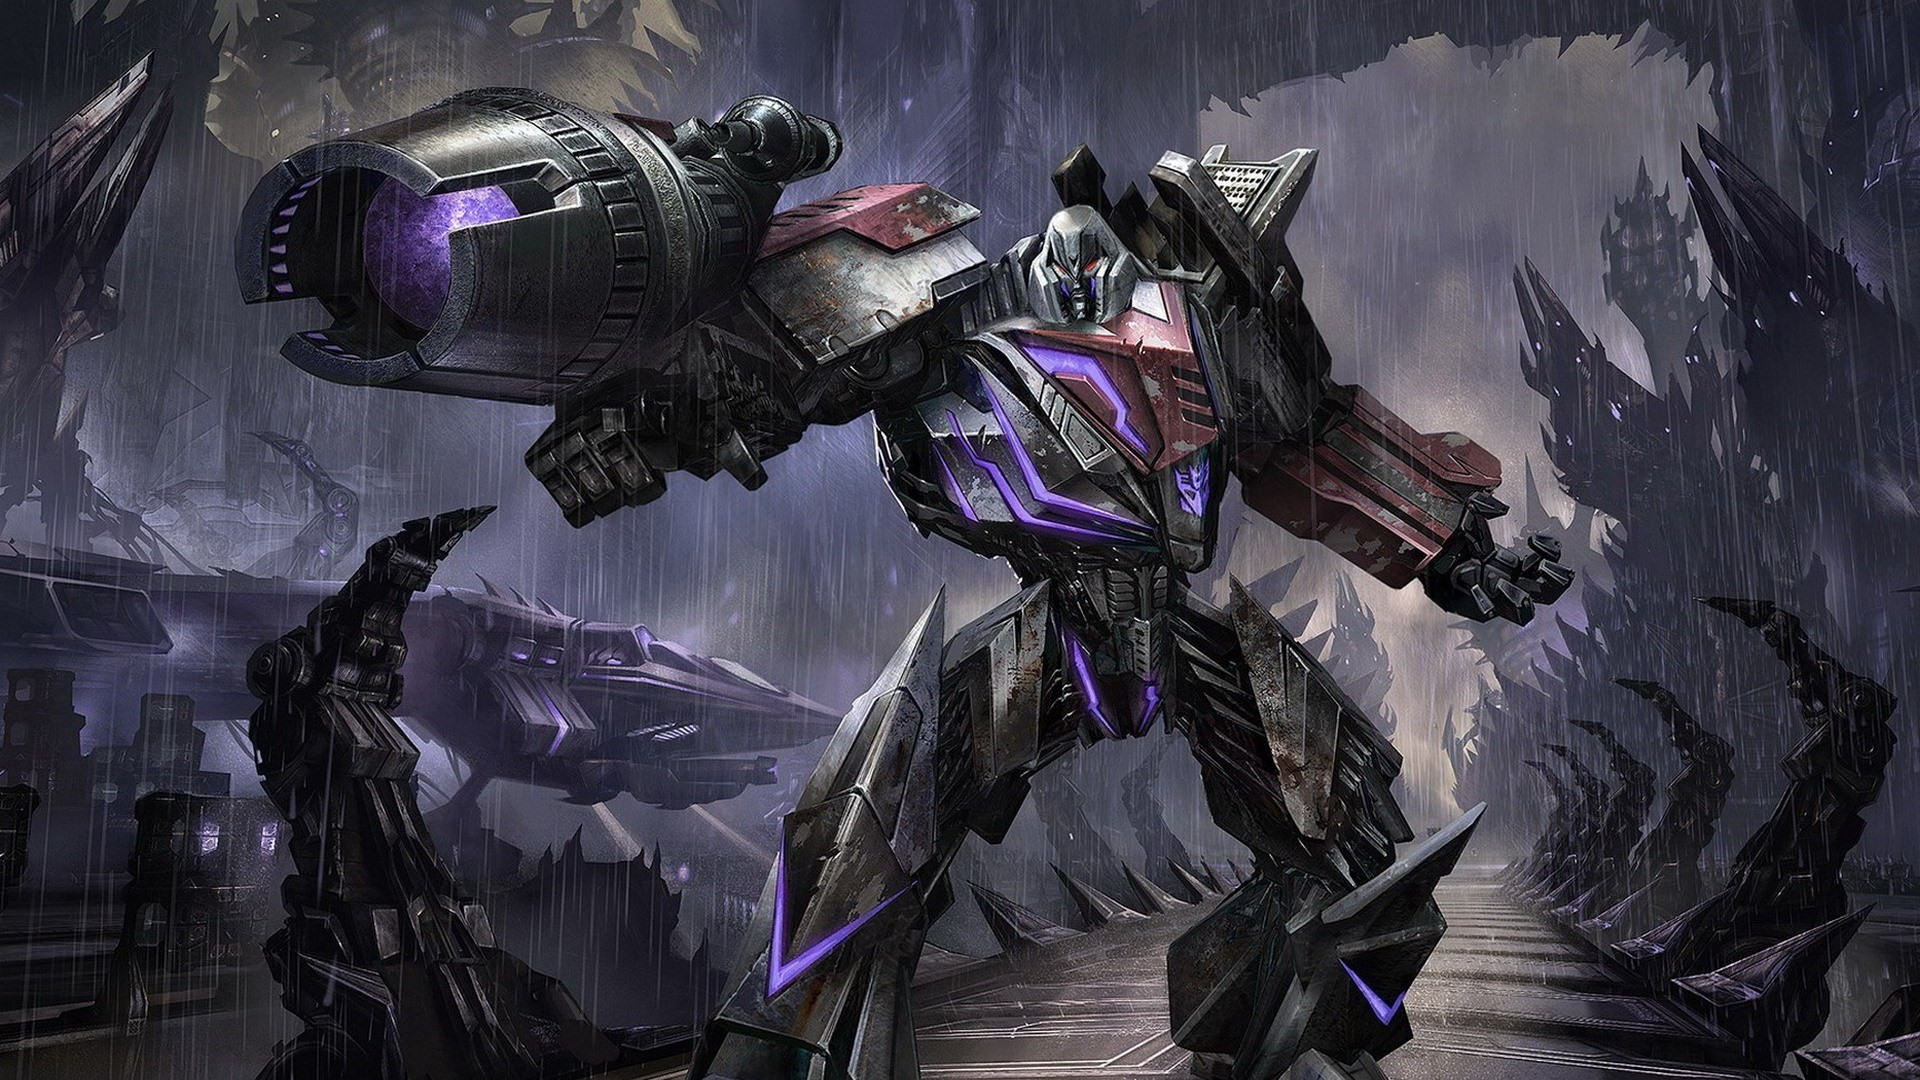 Res: 1920x1080, Transformers Autobot 1080p HD Wallpaper Background